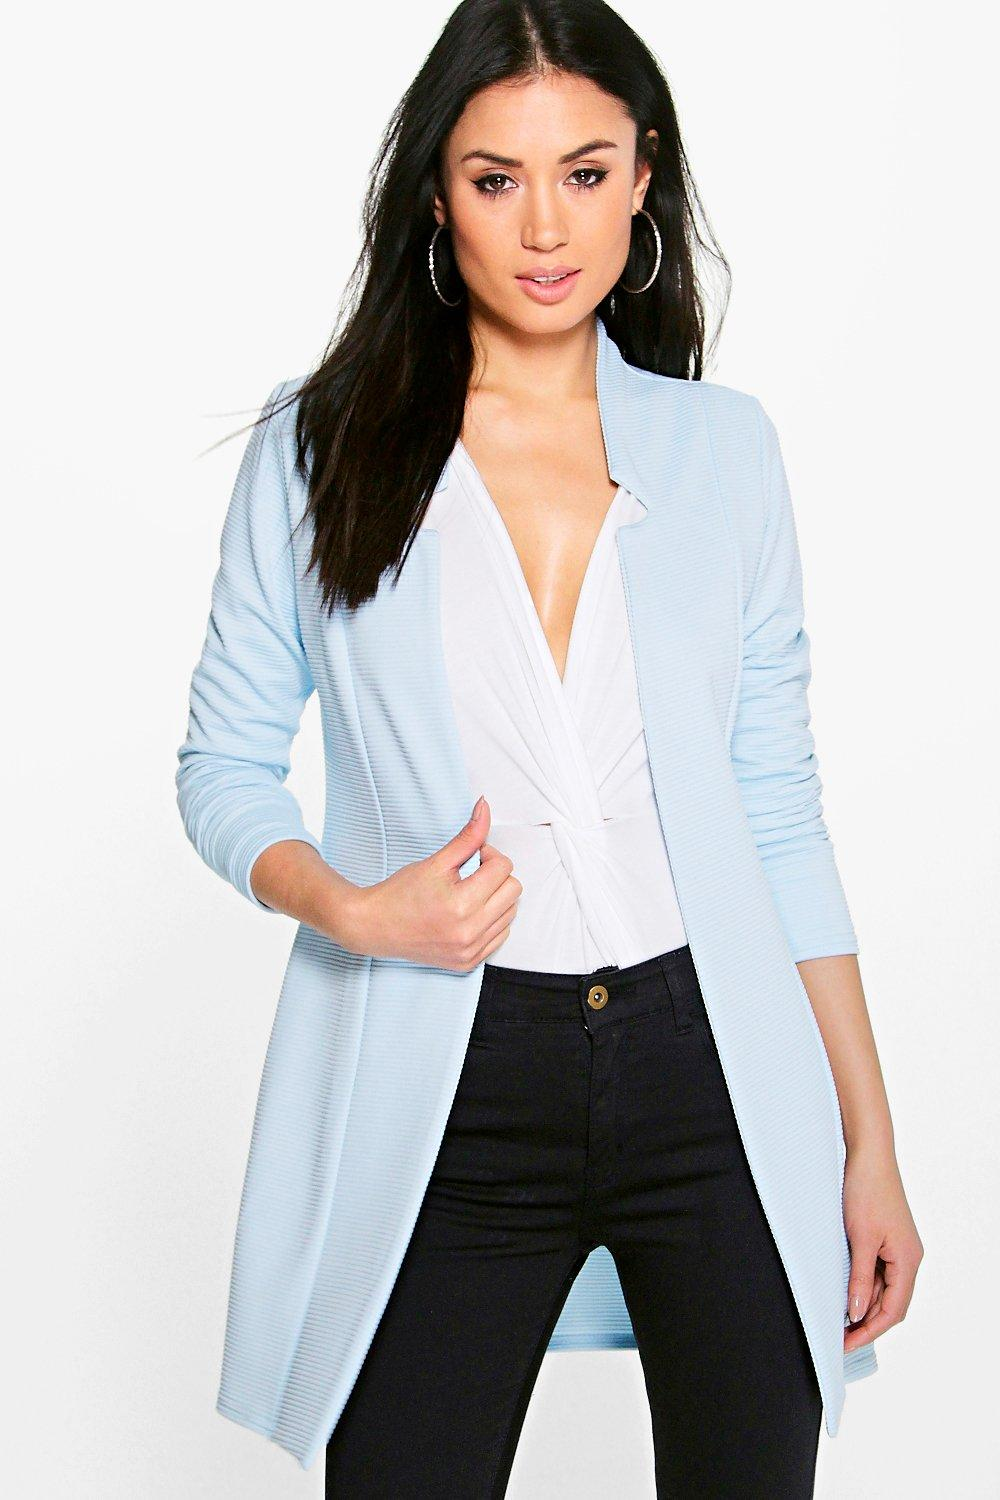 boohoo gracie blazer long c tel pour femme ebay. Black Bedroom Furniture Sets. Home Design Ideas